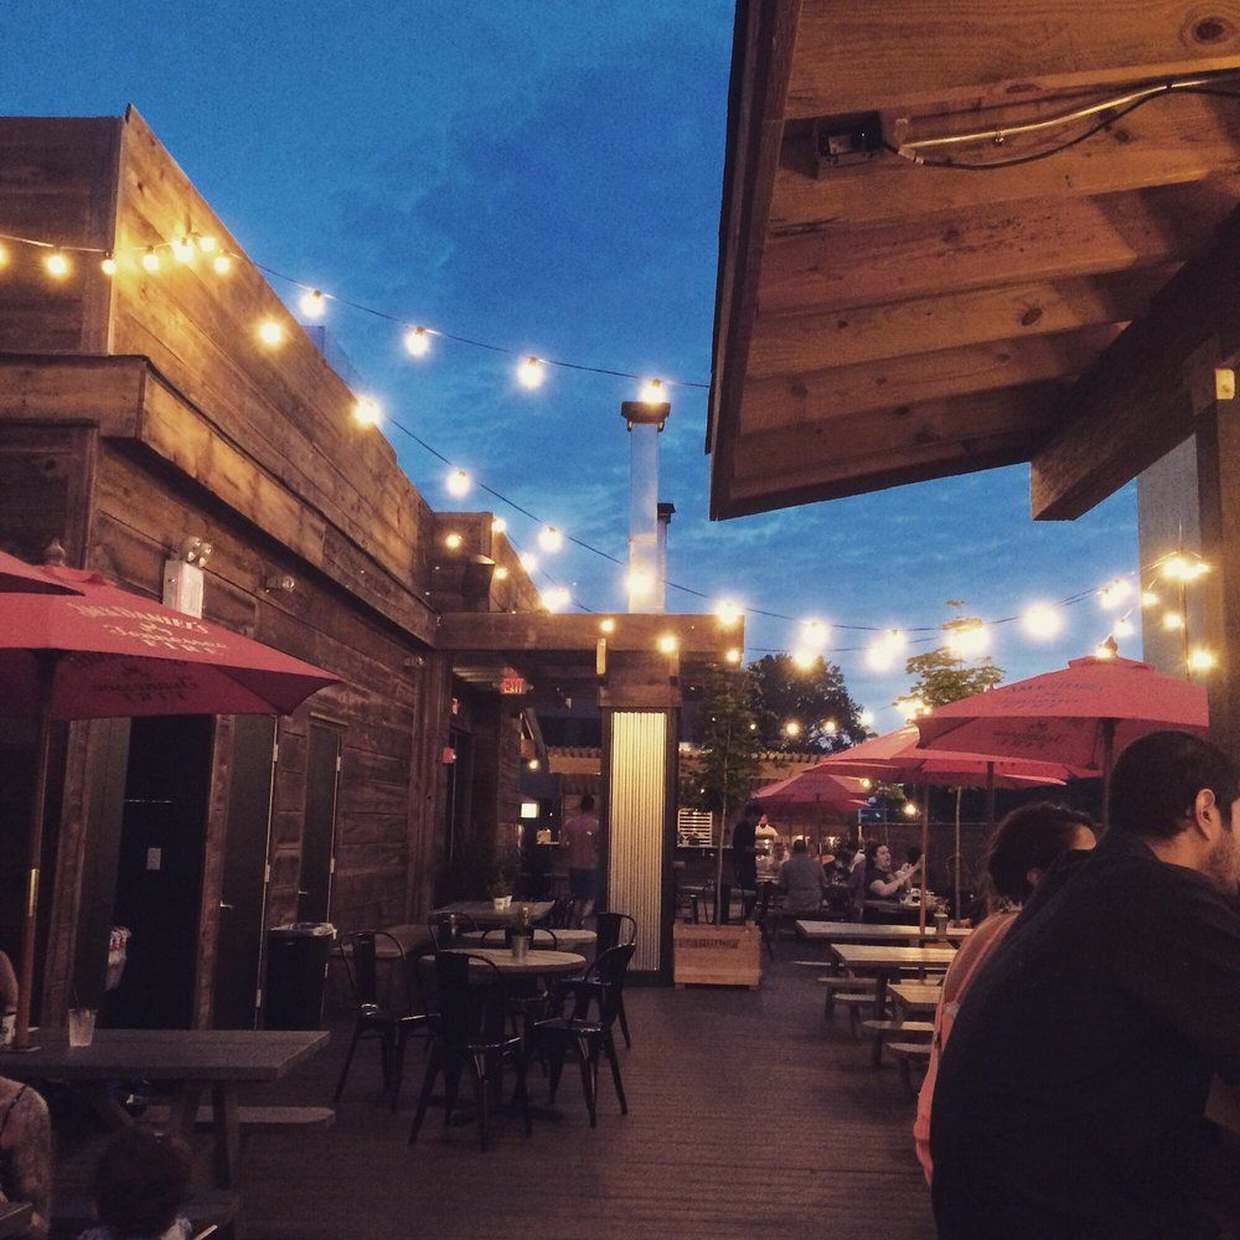 Check out the best rooftop bars in NJ and restaurants in Jersey City.